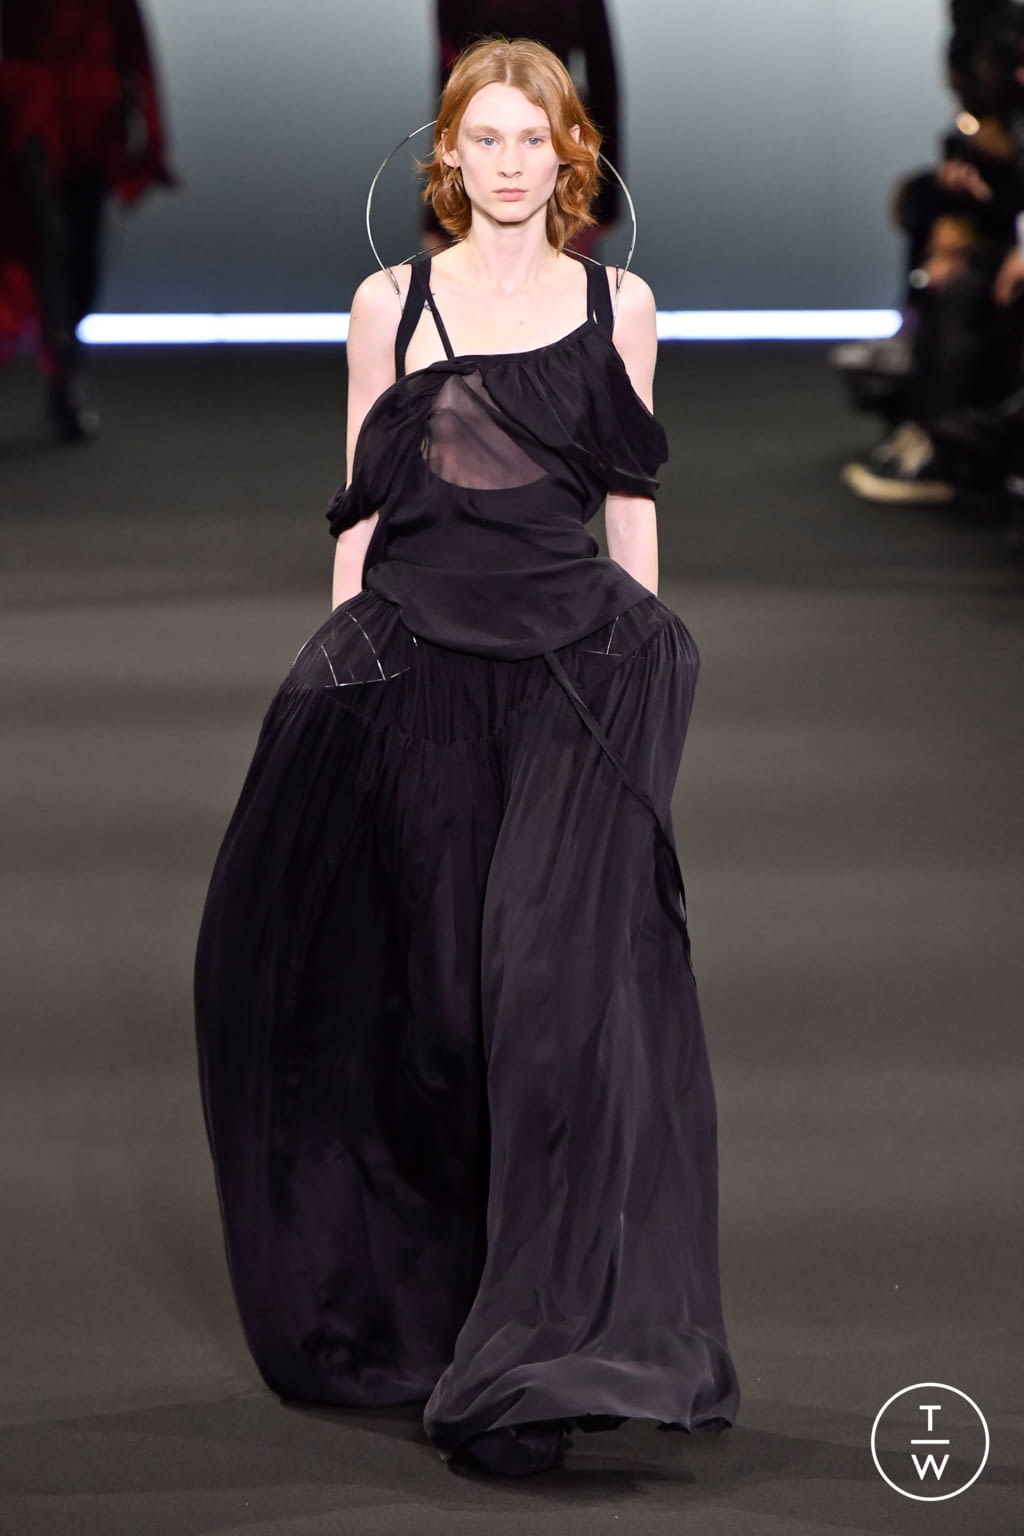 Fashion Week Paris Fall/Winter 2020 look 32 de la collection Ann Demeulemeester womenswear